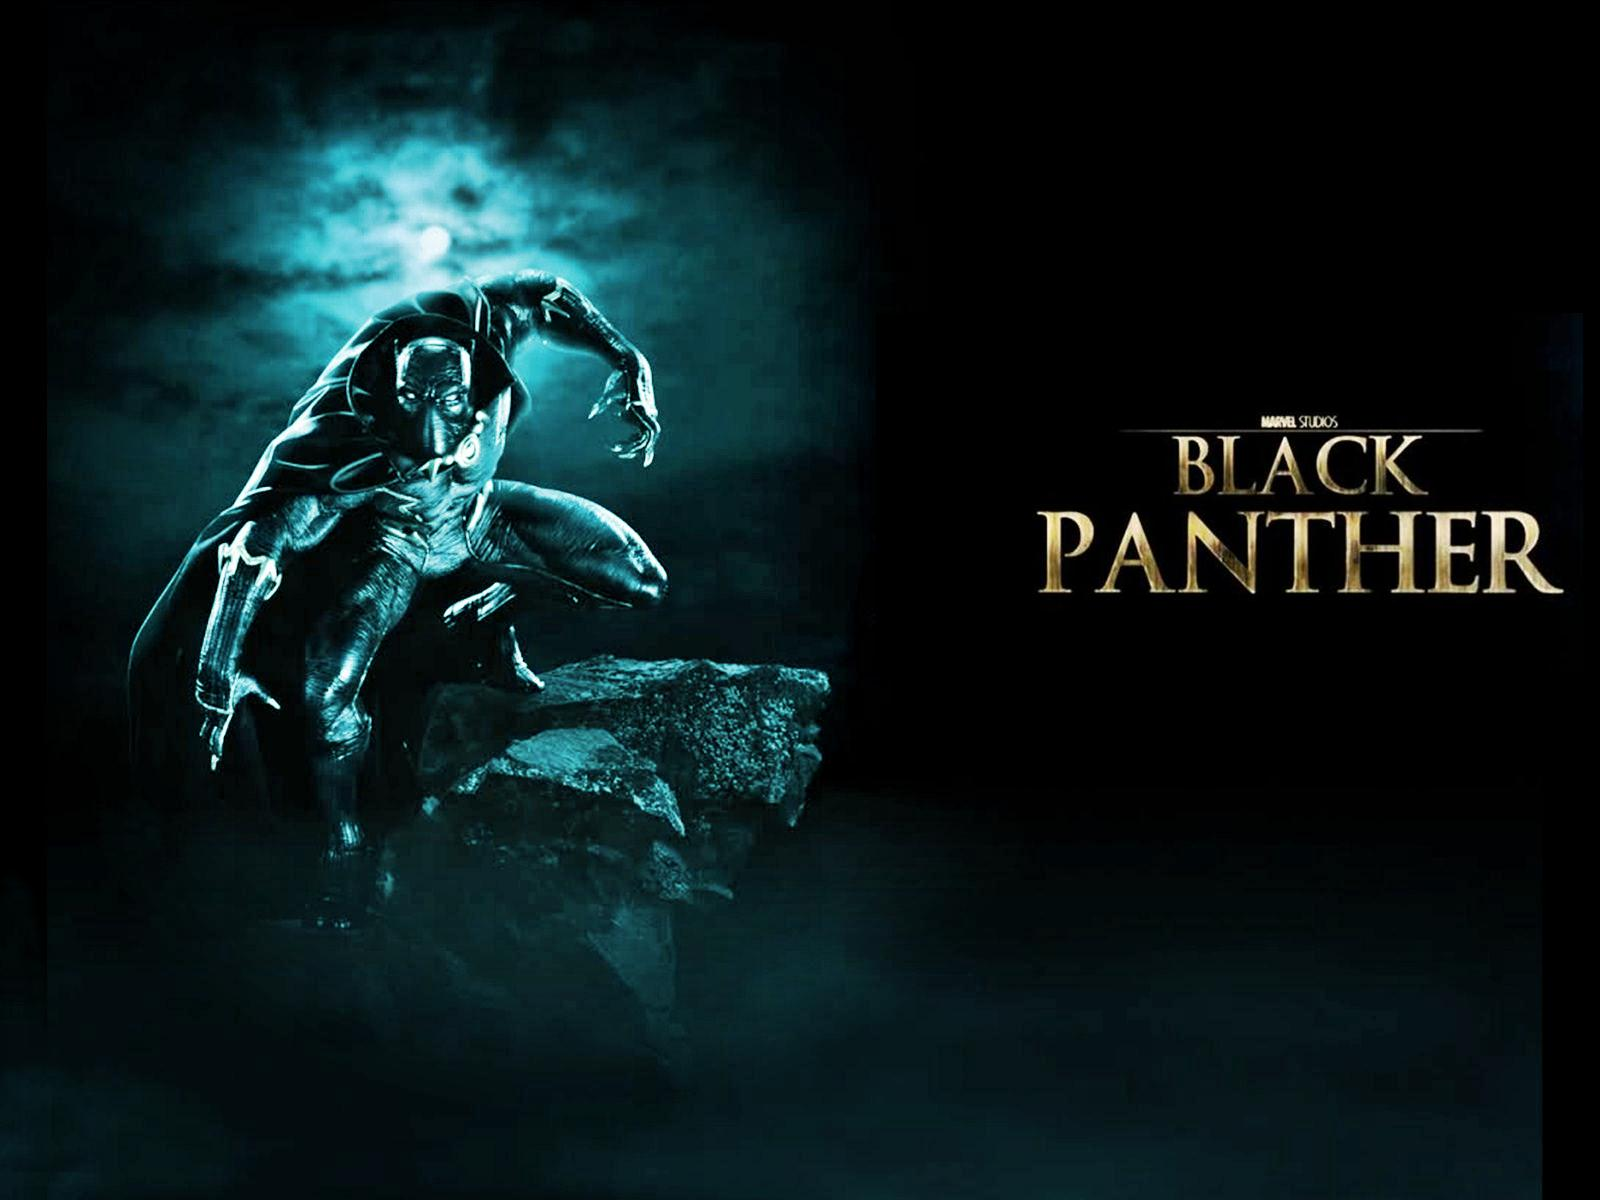 Download Marvel Black Panther 2017 Movie Coming HD Wallpaper Search 1600x1200